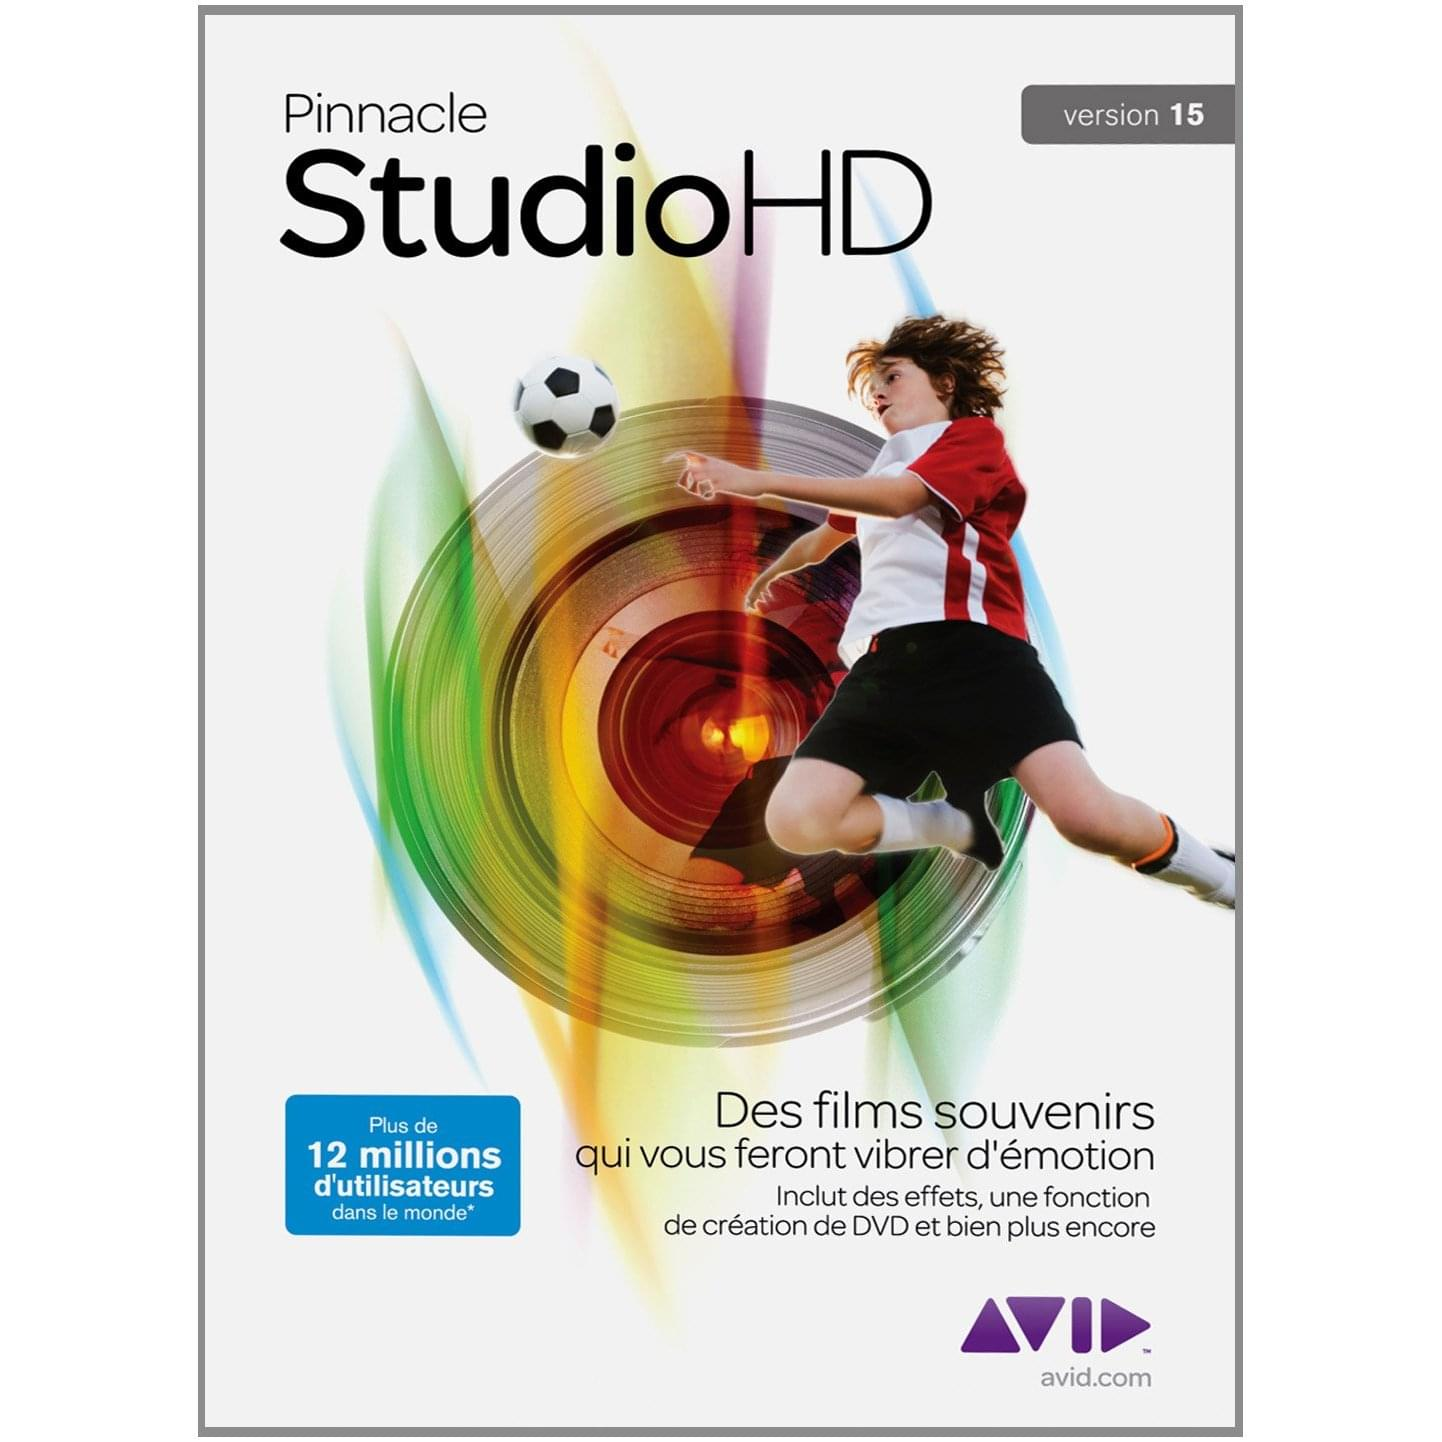 Pinnacle Studio HD 15 (8202-30048-01) - Achat / Vente Logiciel Application sur Cybertek.fr - 0